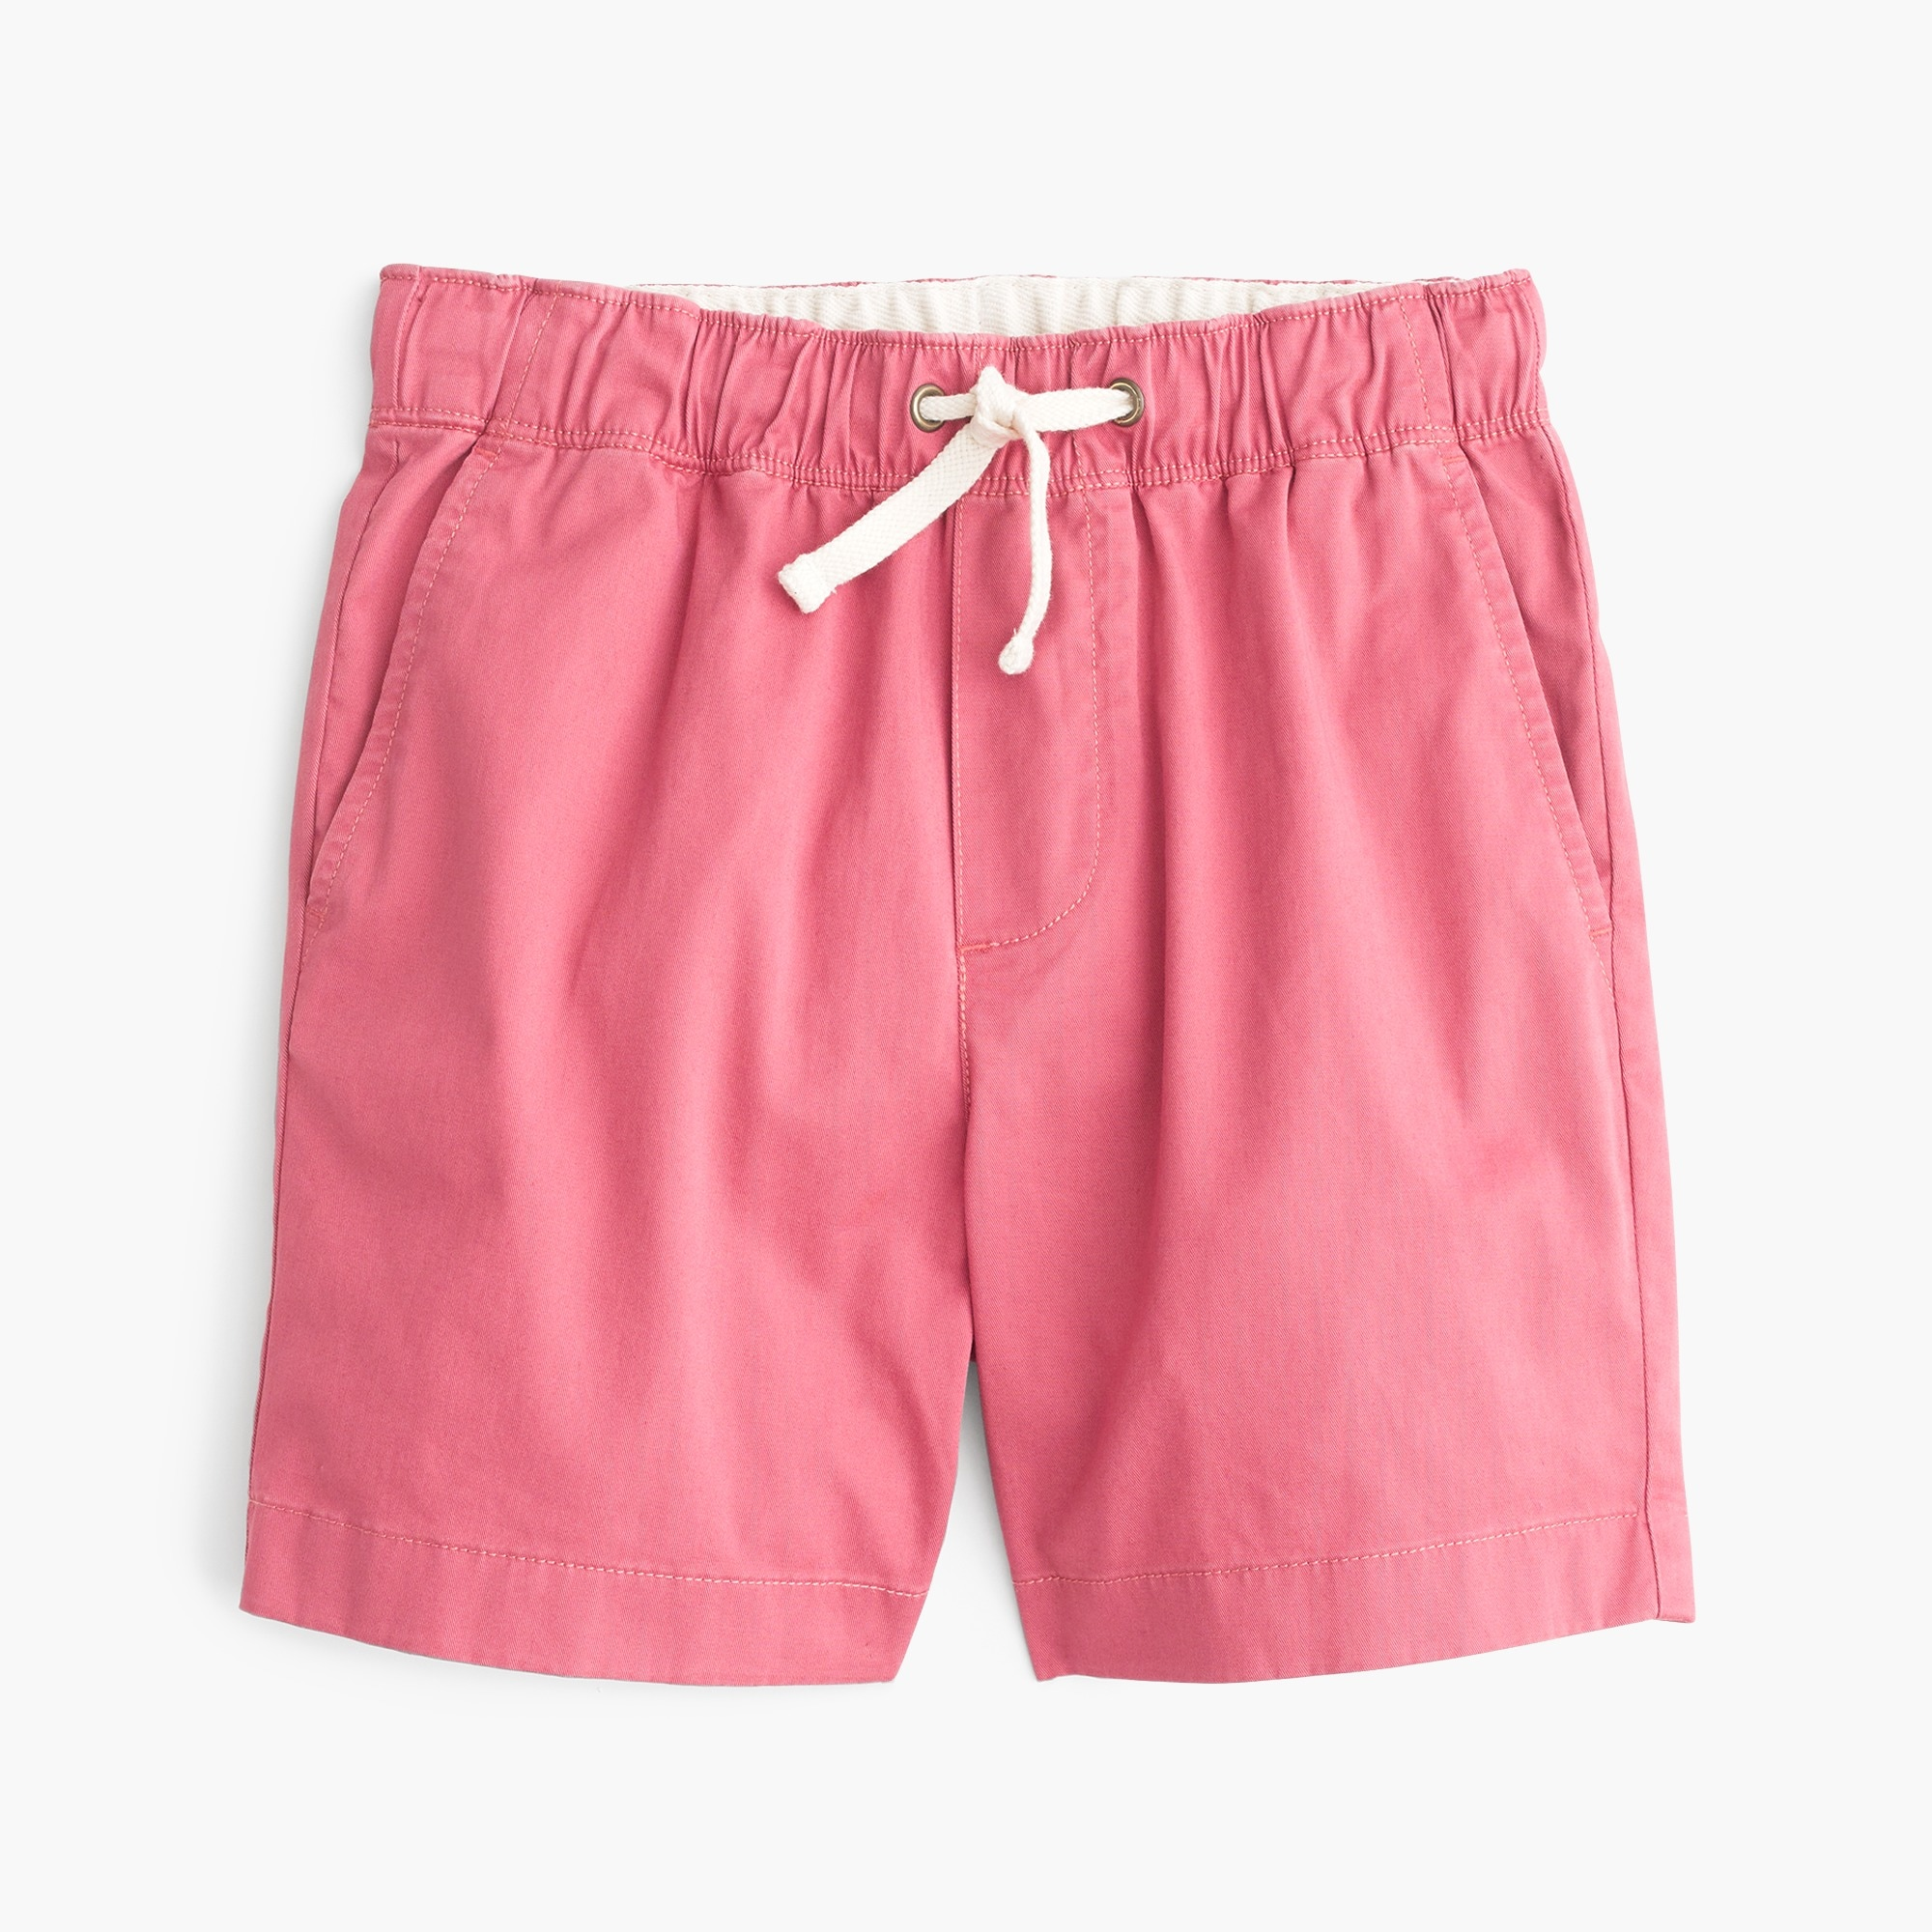 Boys' stretch dock short in lightweight chino boy new arrivals c